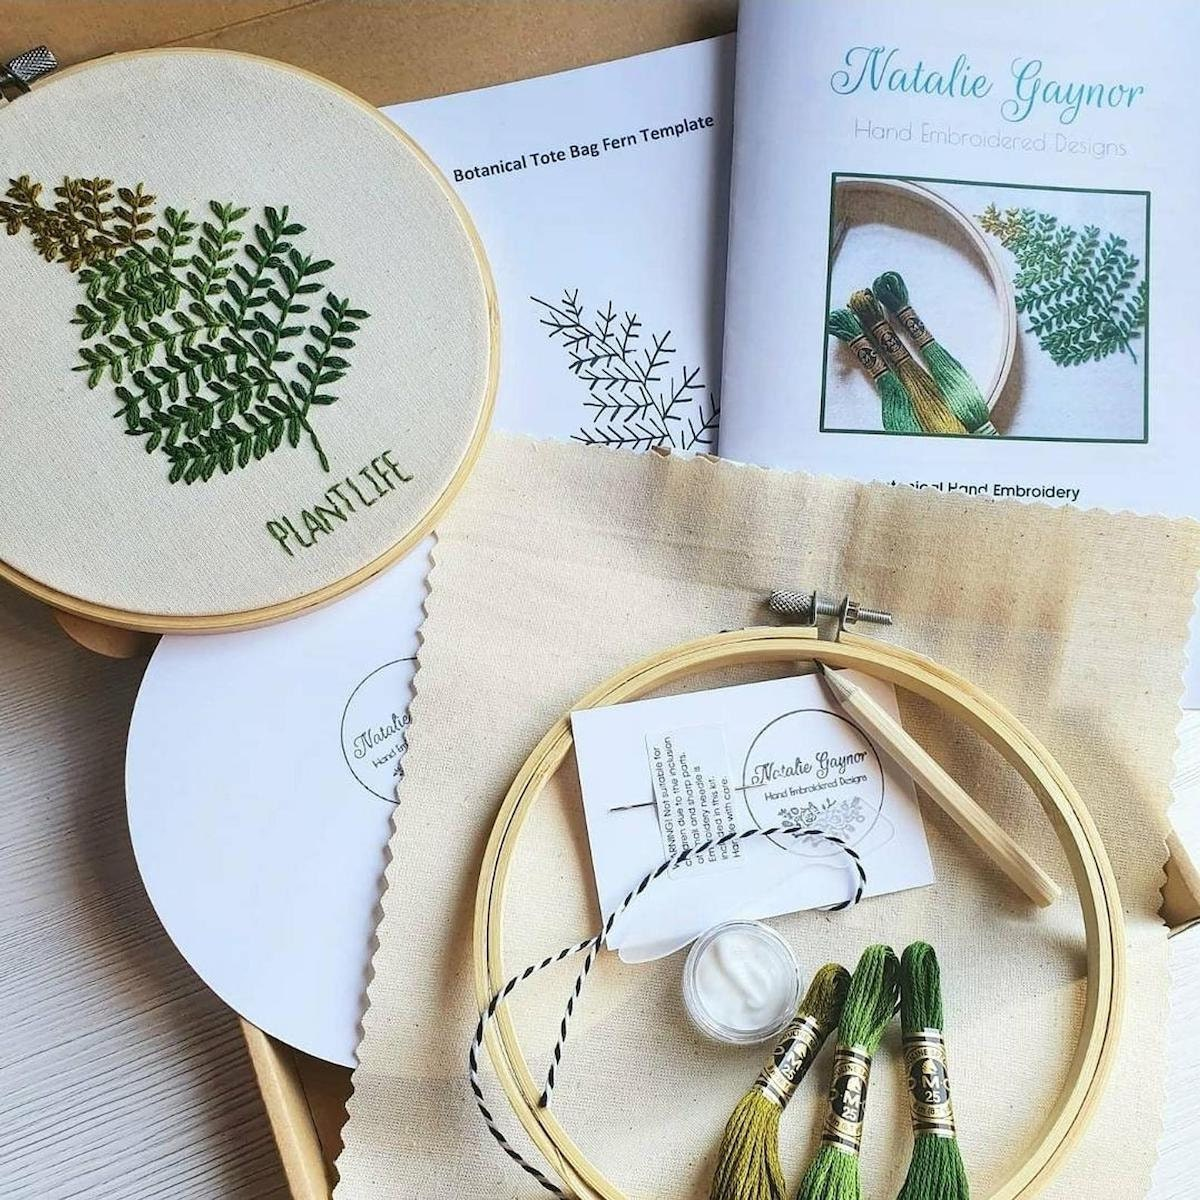 Botanical embroidery kit from Natalie Gaynor Designs and more of the best dad gifts on Etsy